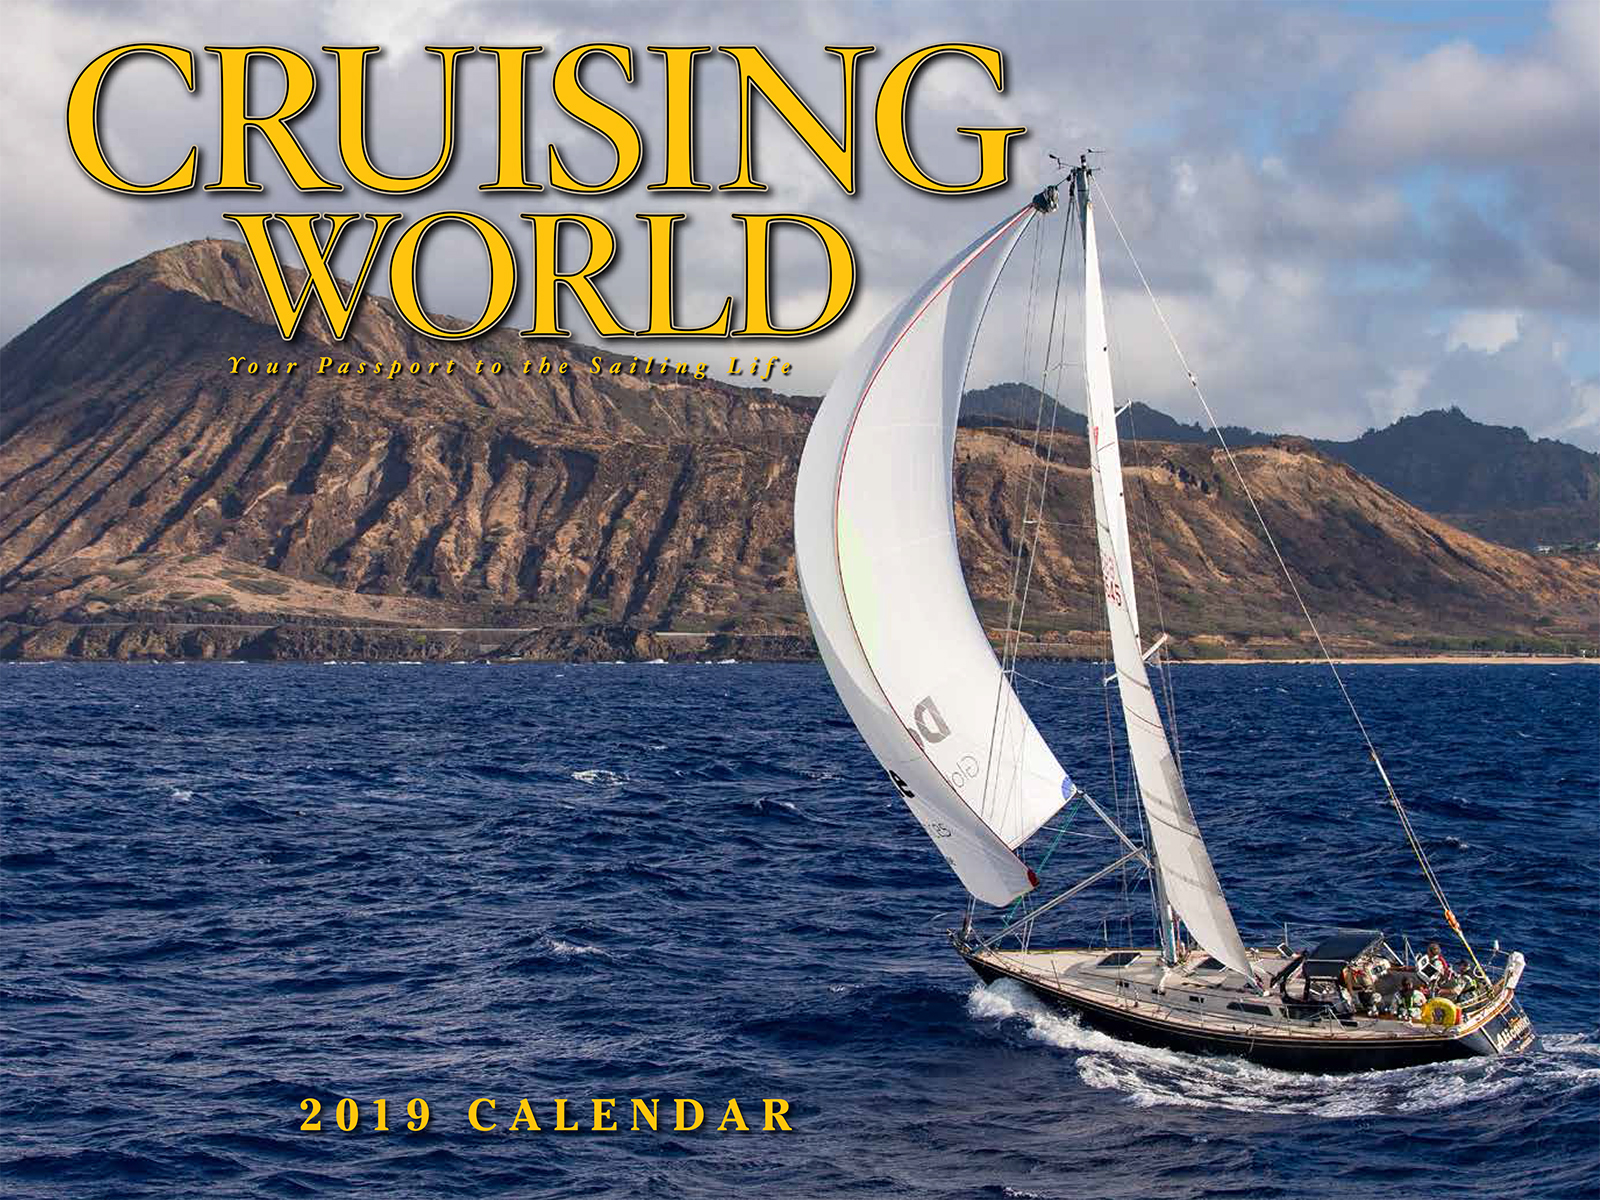 Cruising-World-2019